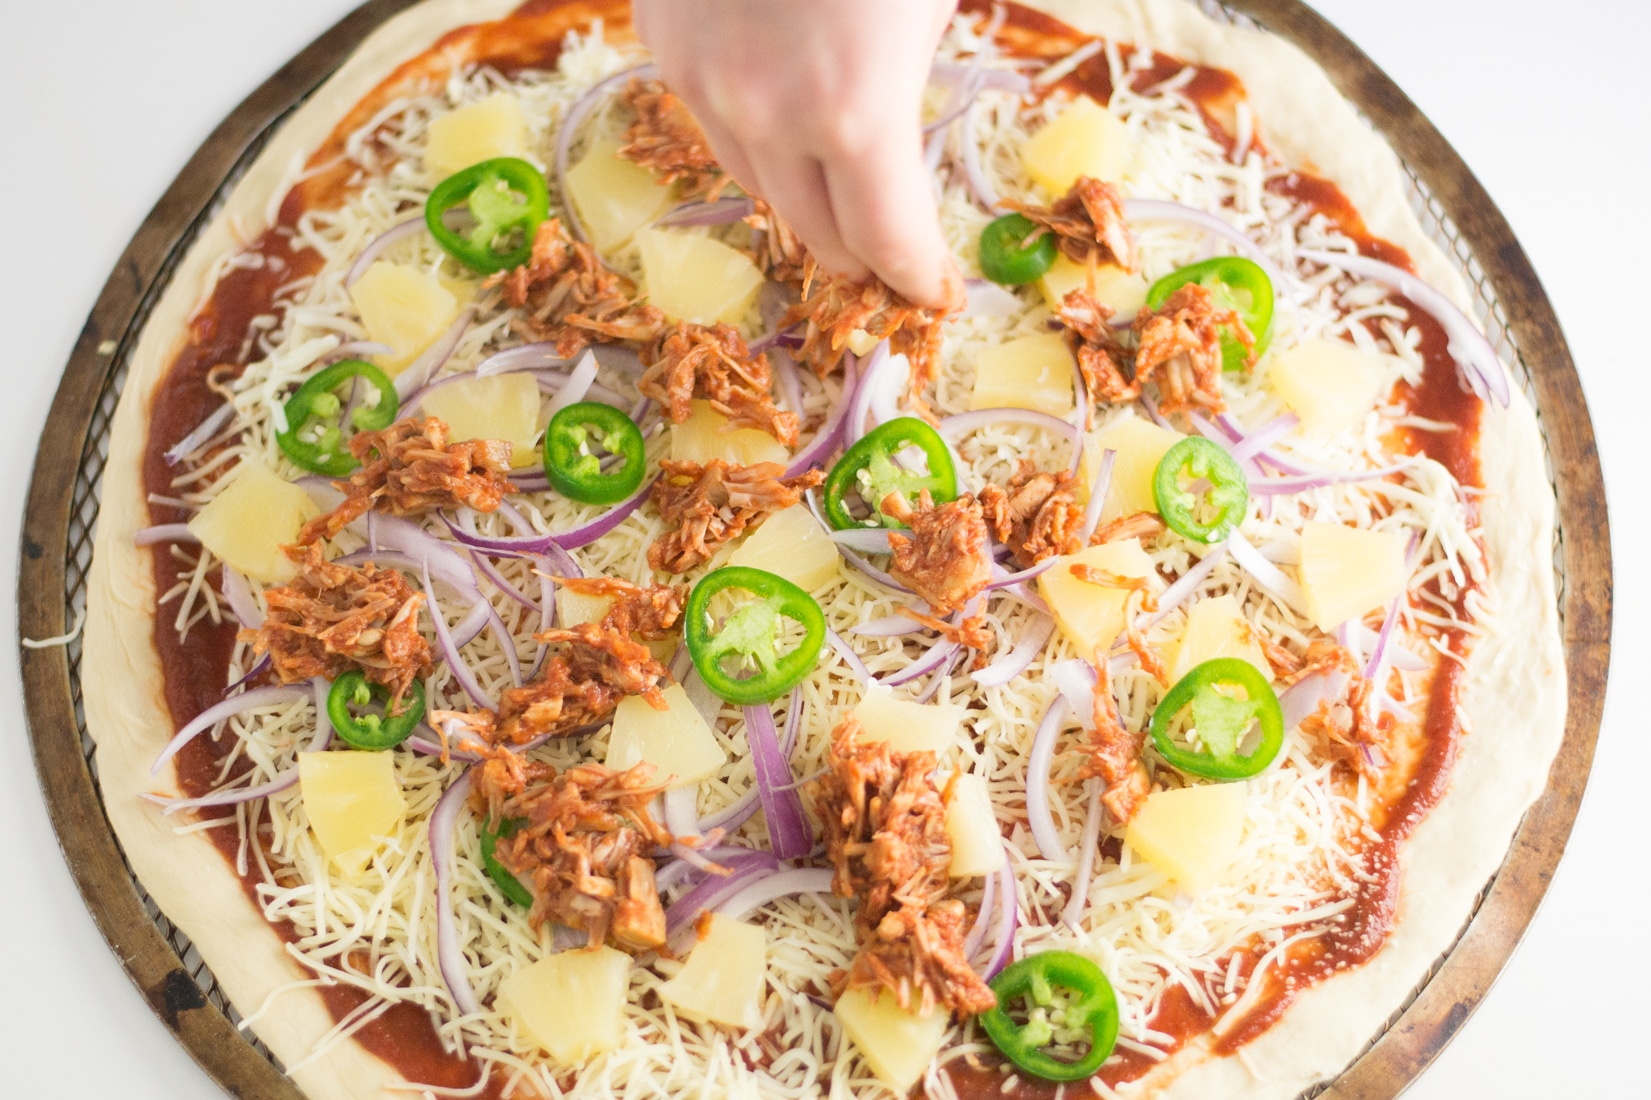 BBQ Jackfruit Pizza -- Try this vegetarian recipe for an easy weeknight meal. Substitute cheese with vegan cheese or make a gluten free crust and you have yourself a vegan or gluten free pizza! | mindfulavocado